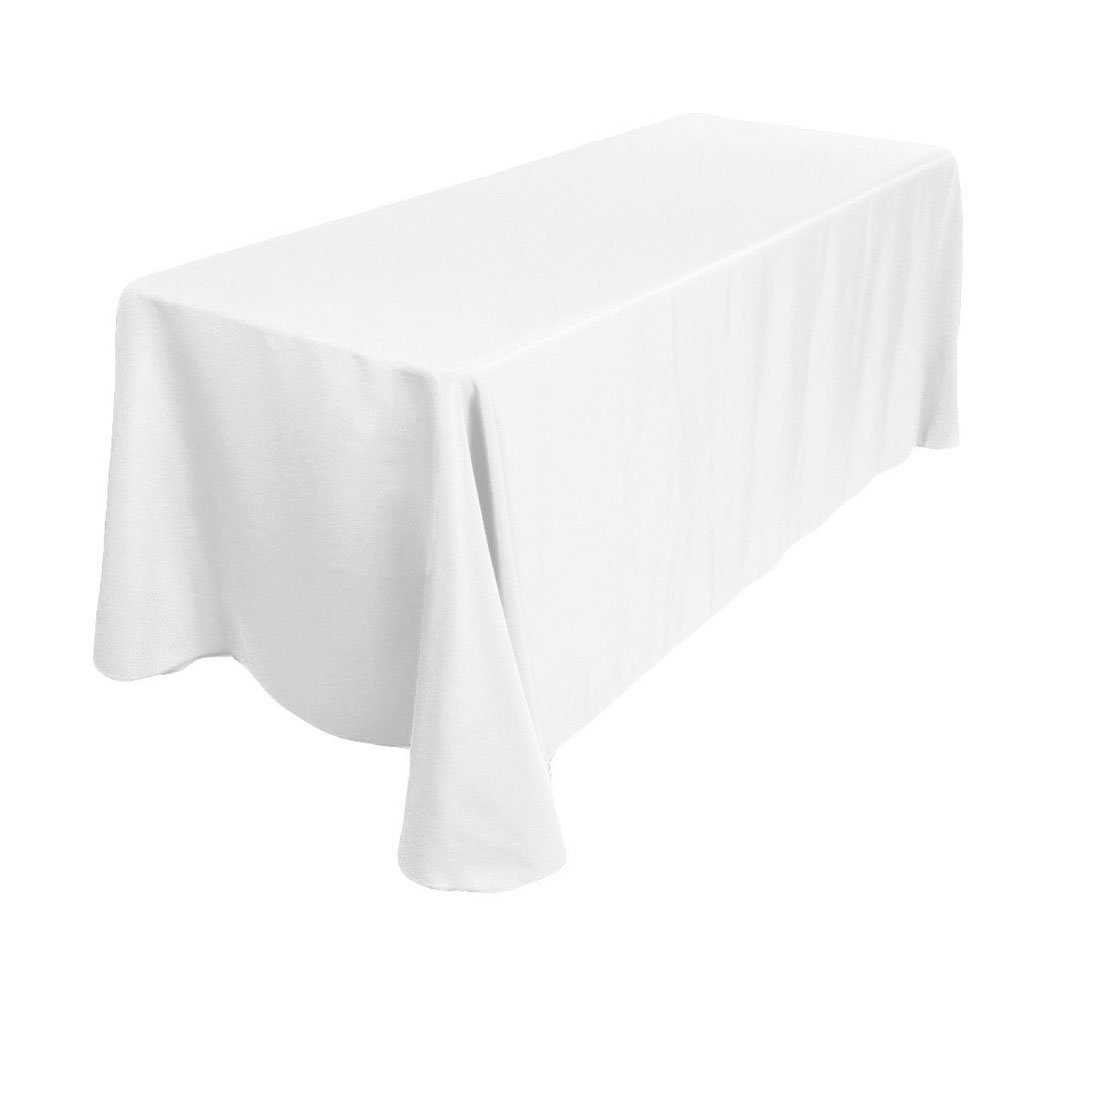 GFCC 90 x 132 -Inch White 225cmx330cm Rectangular Polyester Tablecloth from USA , 100% Polyester, 10-Pack